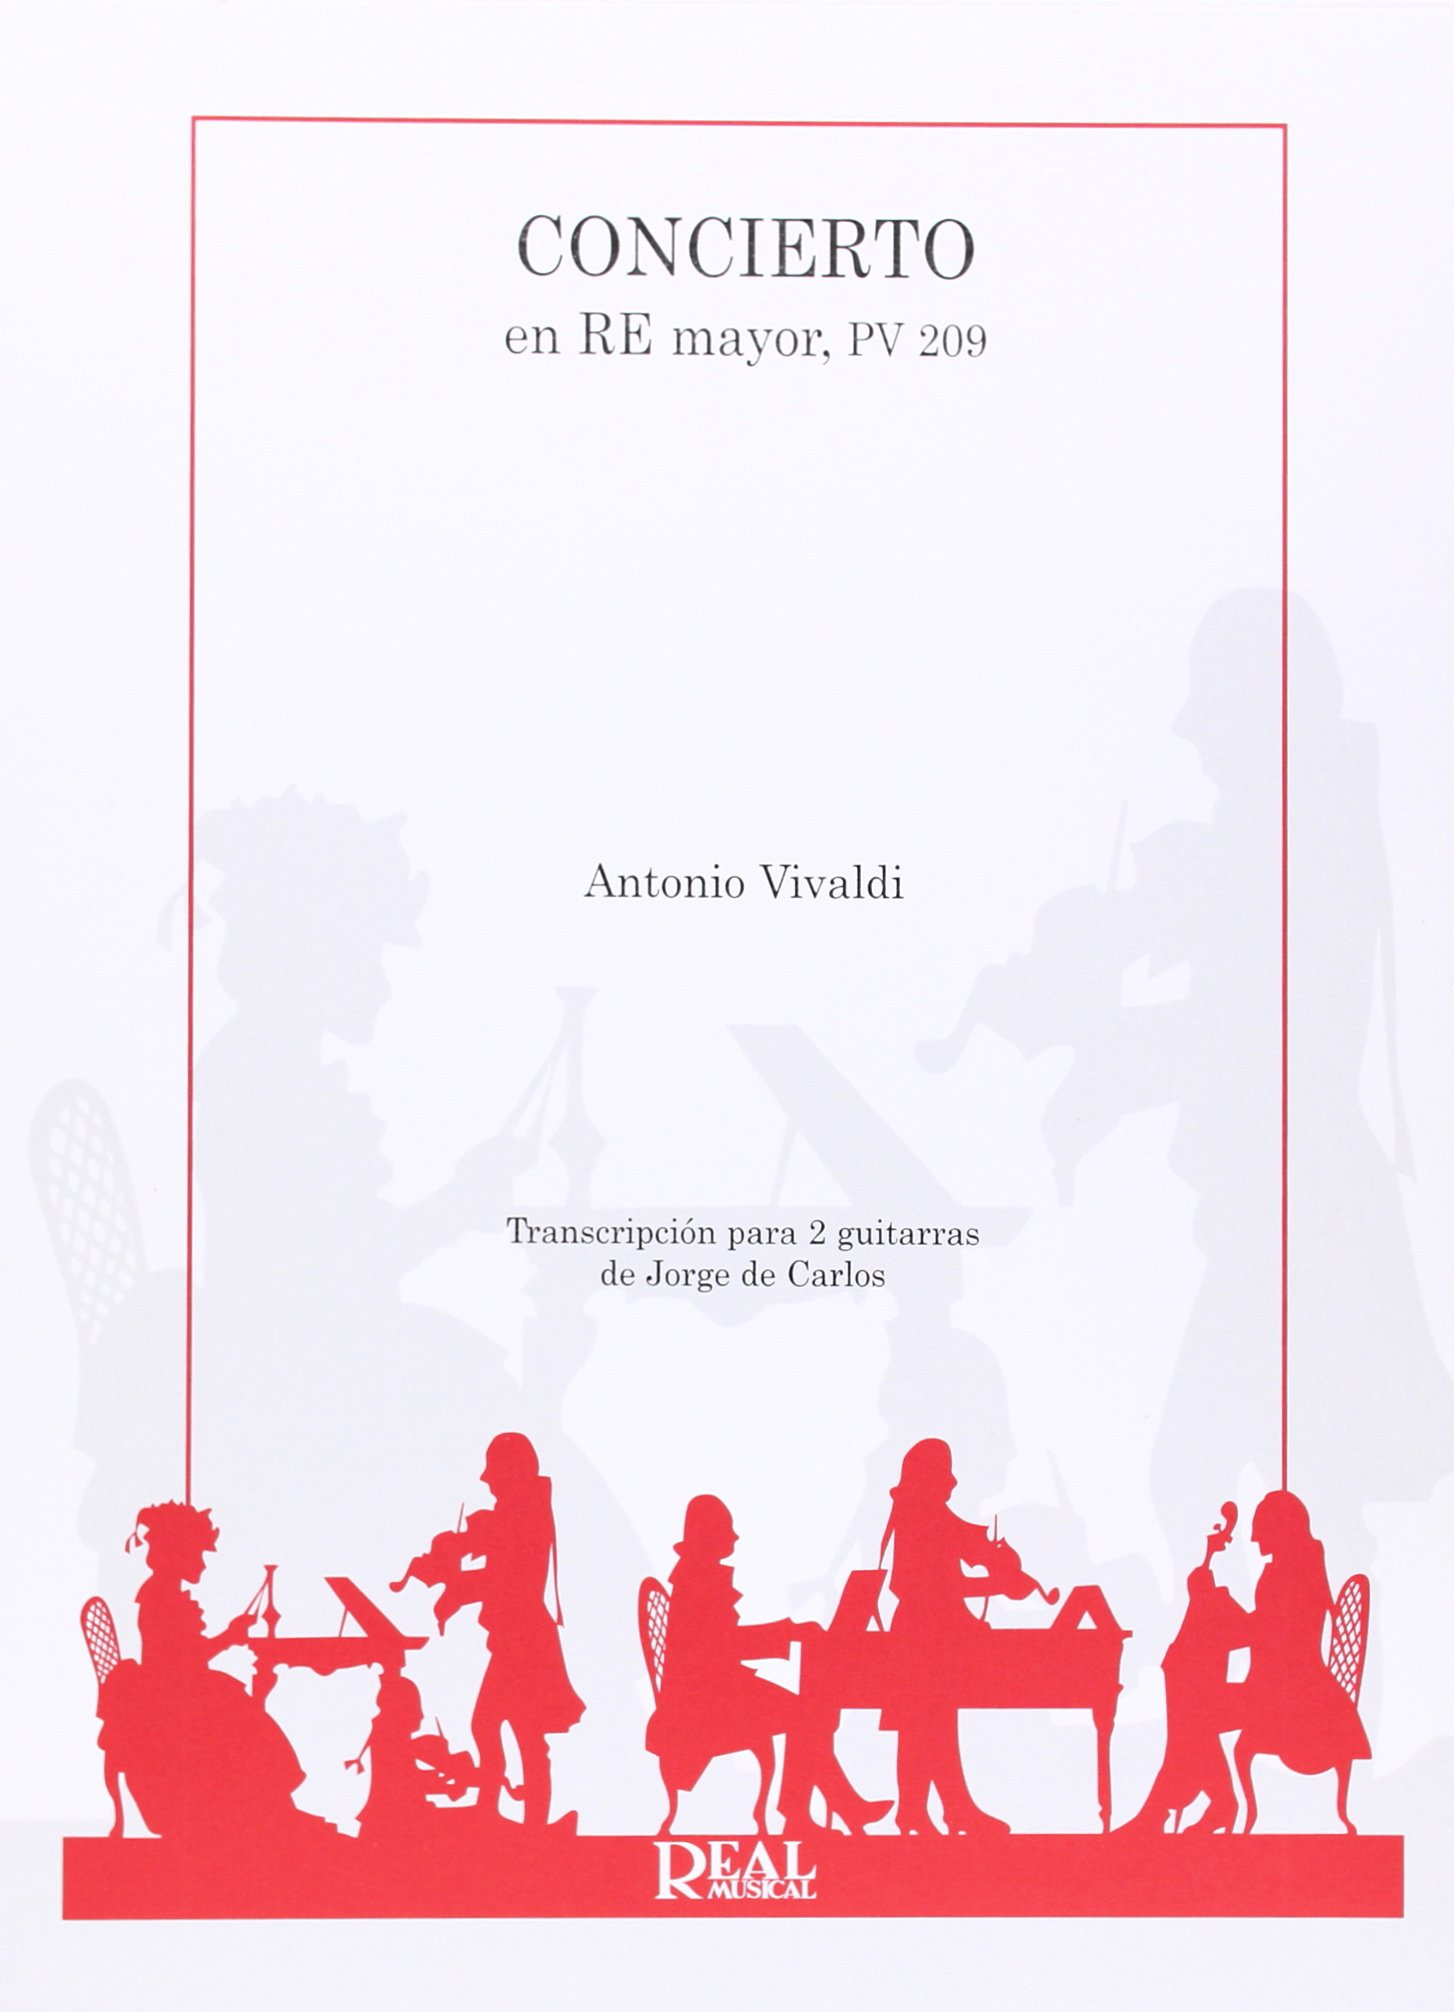 Antonio Vivaldi: Concierto en Re Mayor PV 209 para 2 Guitarras: Amazon.es: Antonio Vivaldi, 2 Guitars: Libros